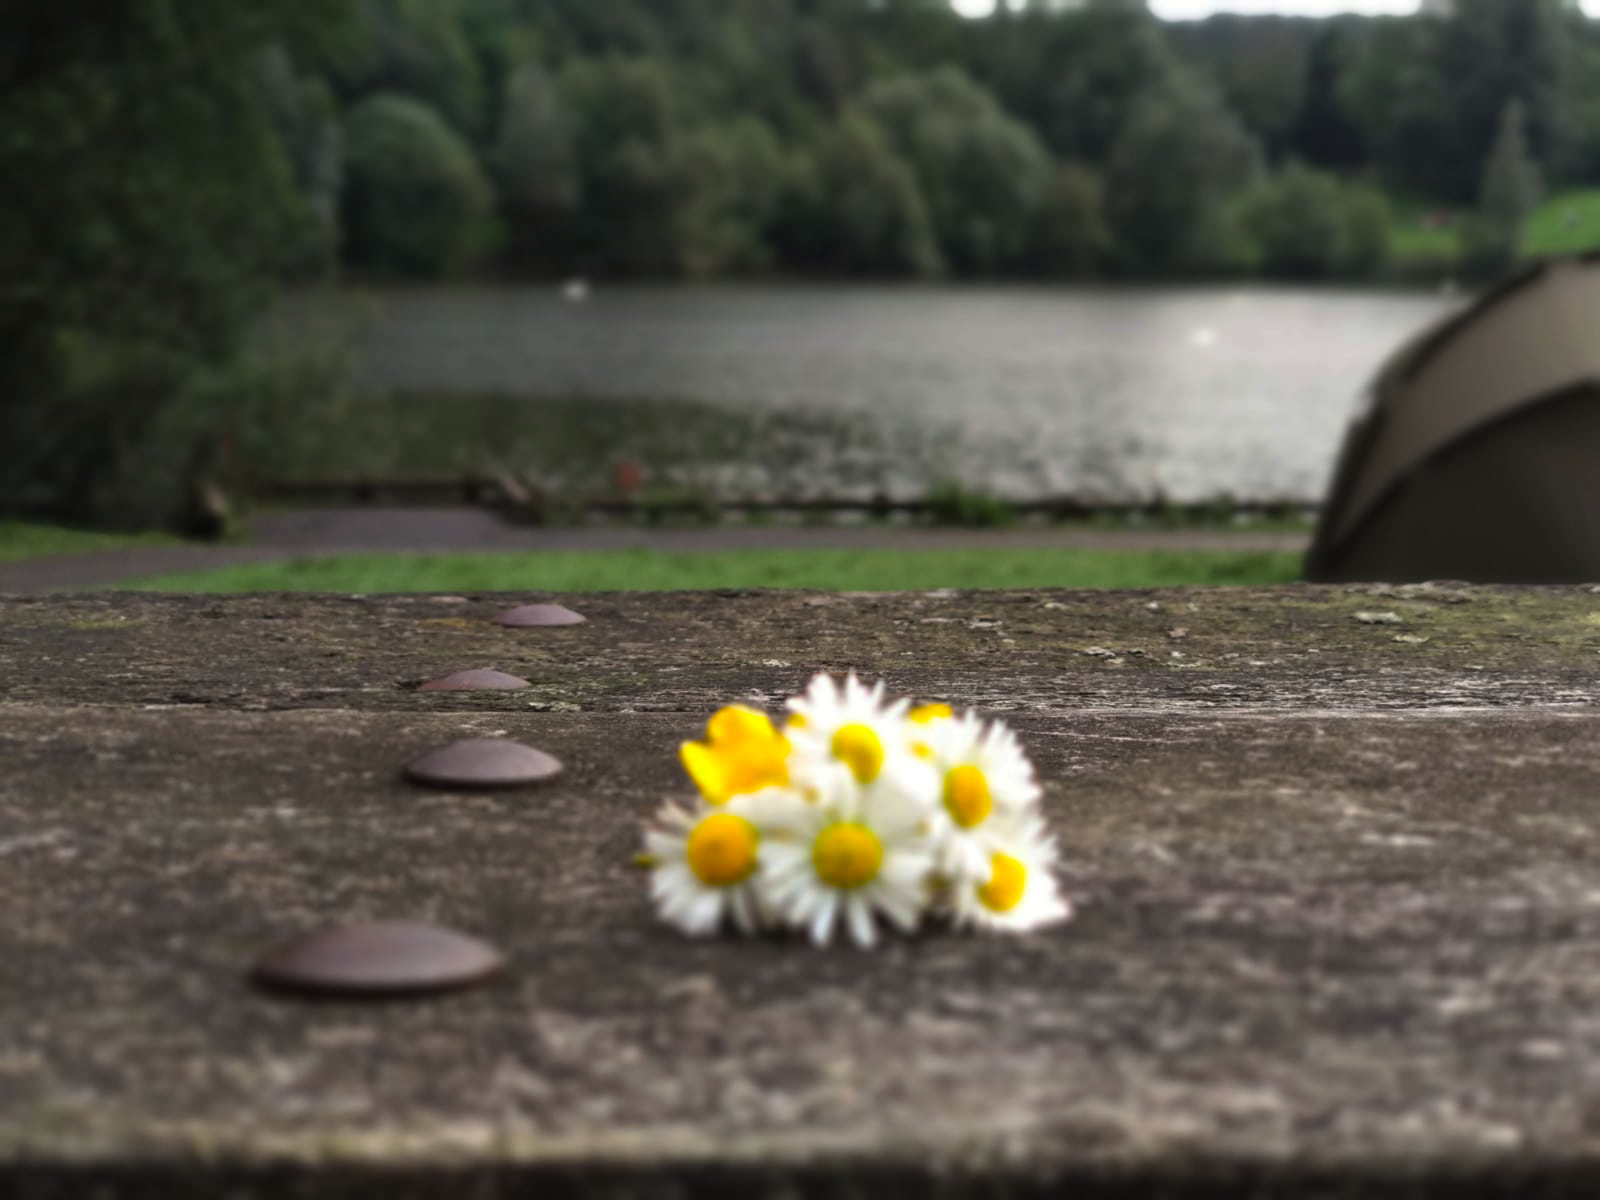 A group of pretty daisies have been rested on the ground with a river behind them